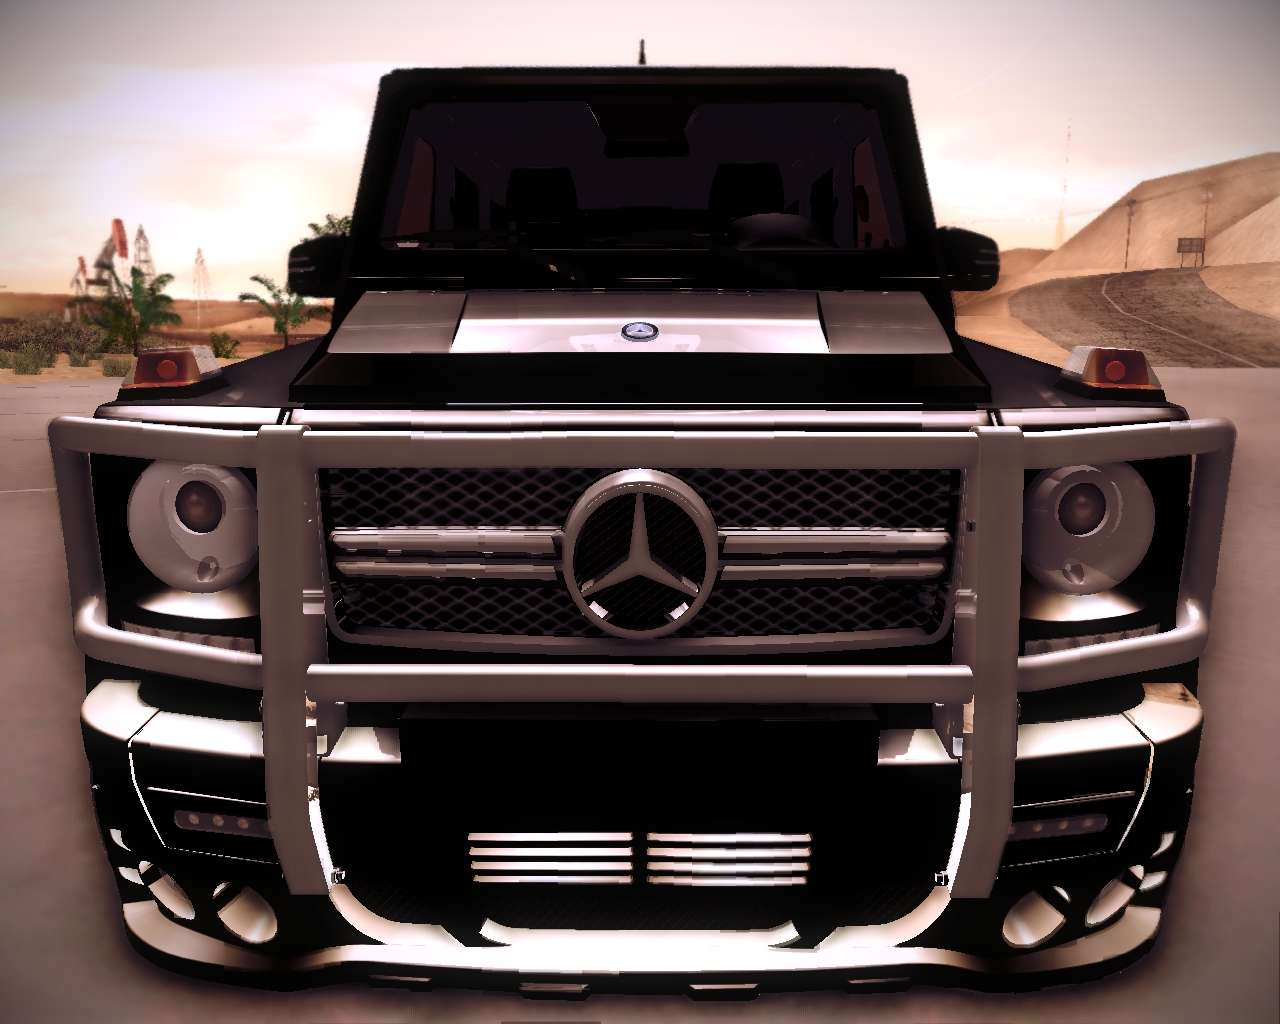 gta san andreas mercedes benz g65 amg with 26913 Mercedes Benz G65 Amg 2013 Hamann on 32906 Mercedes Benz G65 Amg Hamann besides 47496 Mercedes Benz G65 Amg in addition 22169 Mercedes Benz G500 Limousine in addition 59640 Mercedes Benz G65 Amg Carbon Edition also 24154 Mercedes Benz G65 Amg 2013.